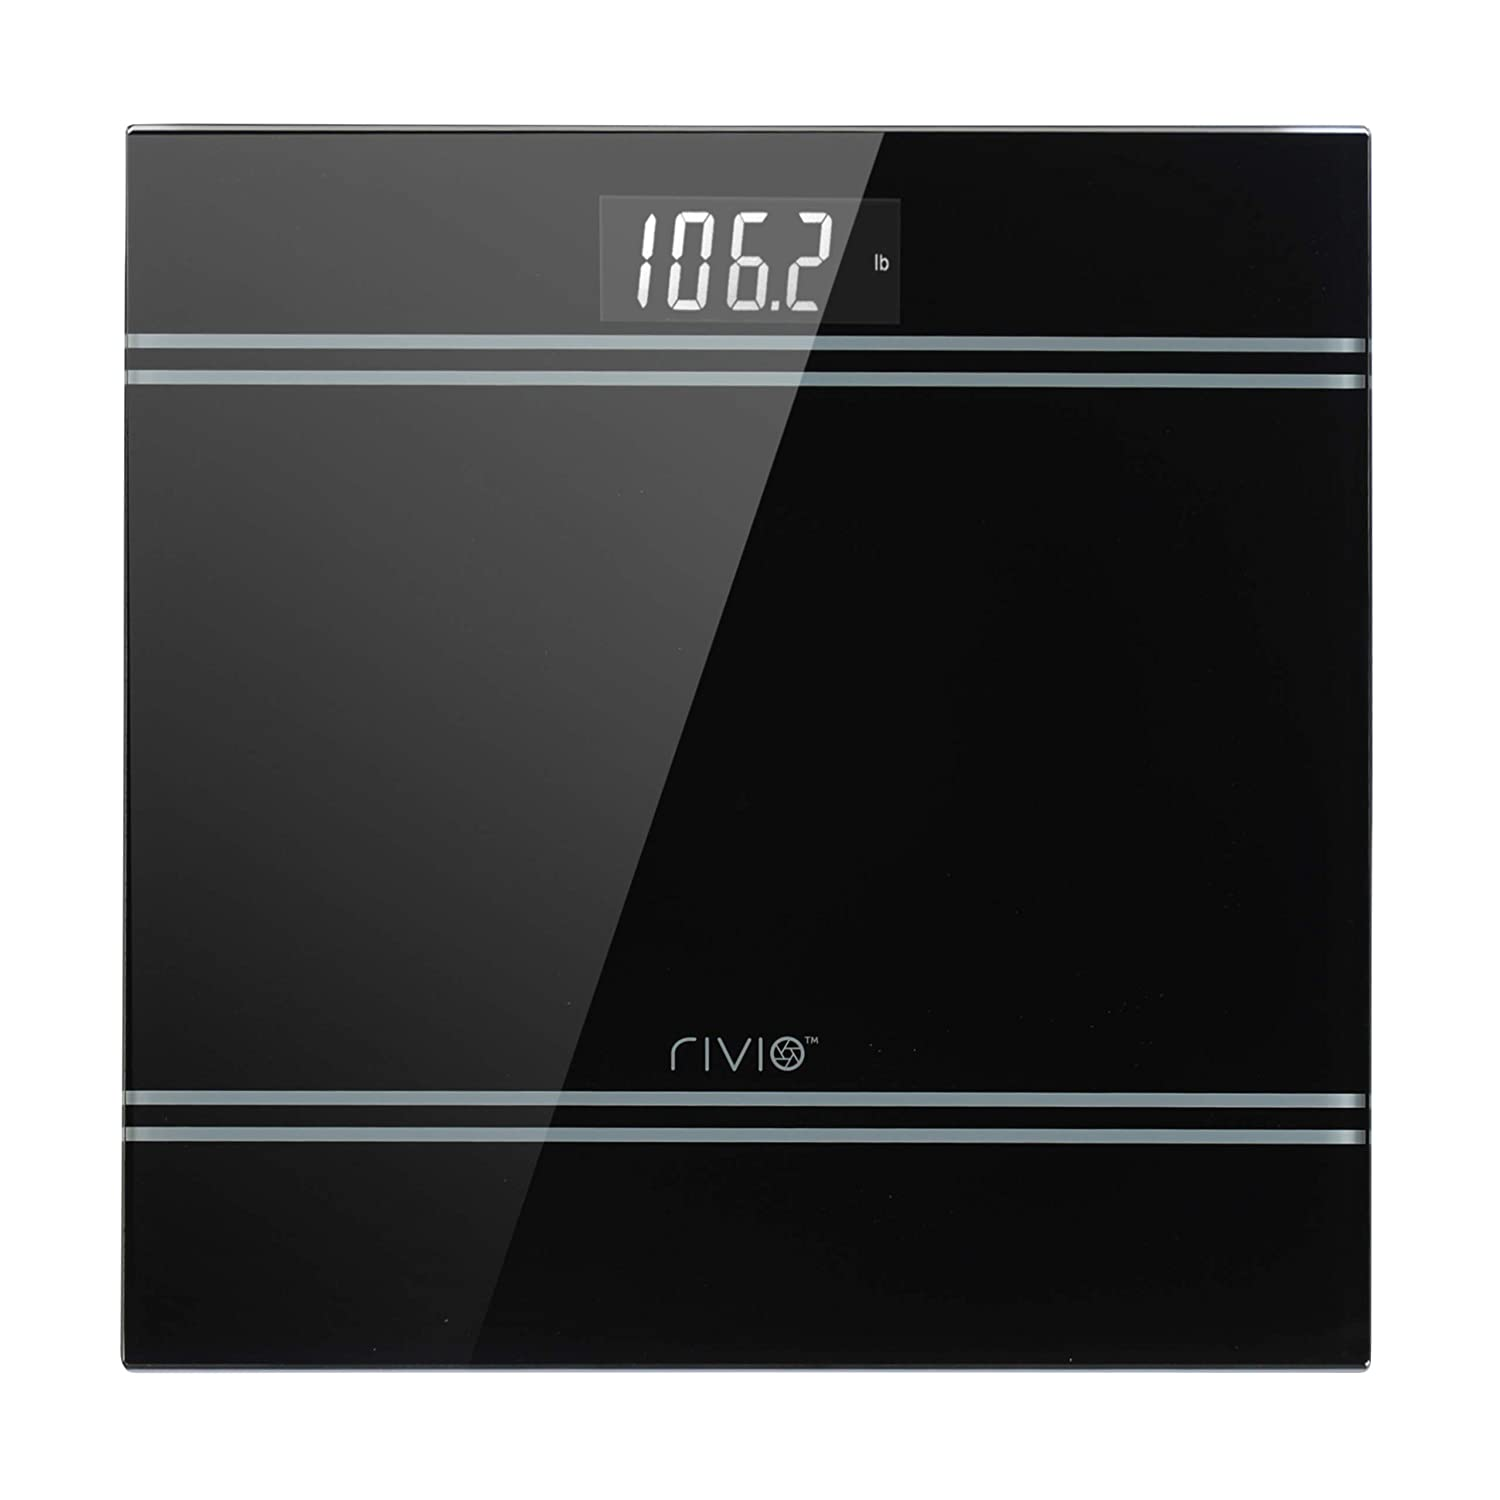 PPK RIVIO Bathroom Scale High Precision Digital Body Weight Scale with Large Backlit LCD Display 440Ib Green